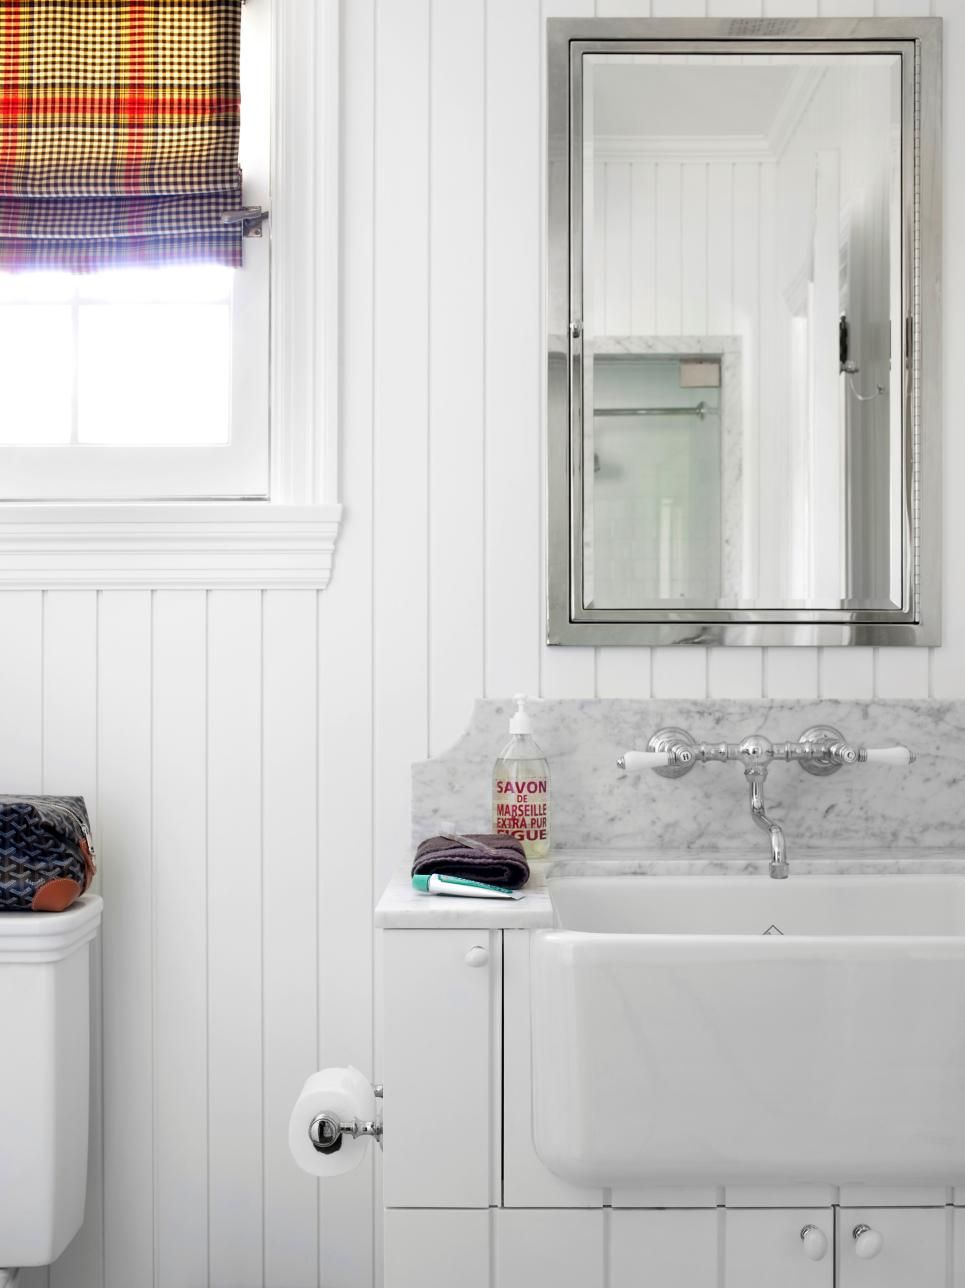 10 Big Ideas for Small Bathrooms | home | Pinterest | White wood ...